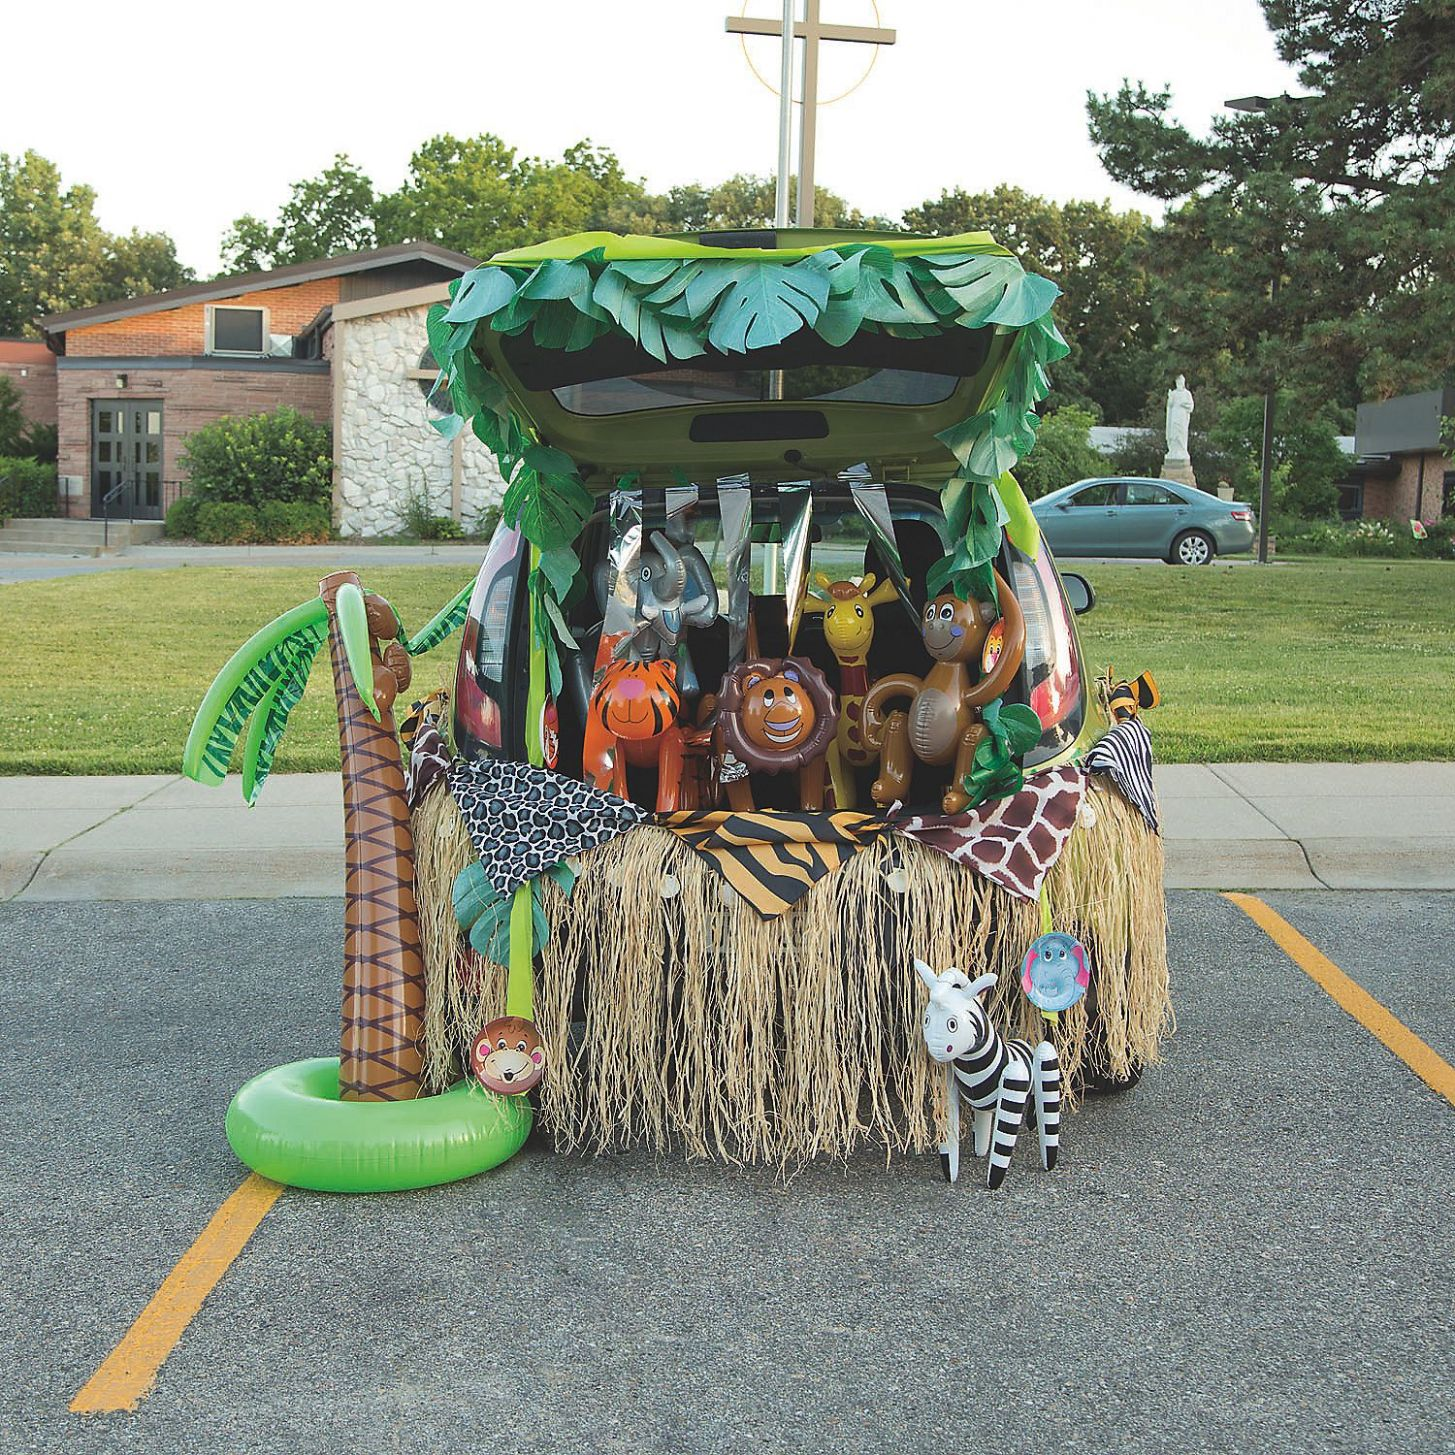 Trunk or Treat Juncle Decor: OrientalTrading.com (With images ...